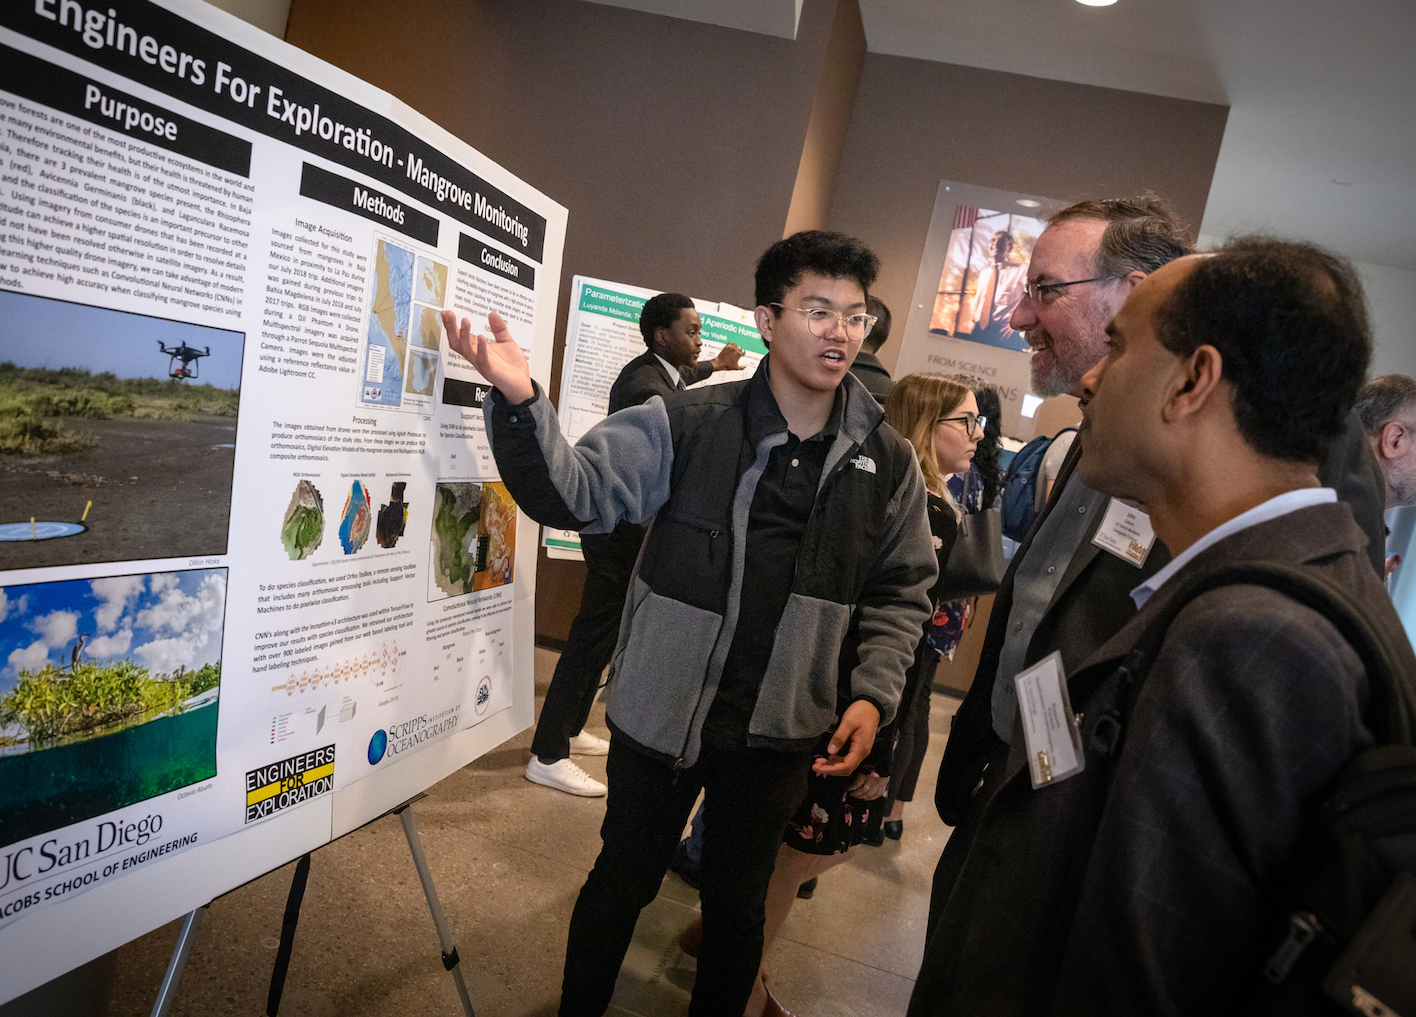 Undergraduate scholarship winner presents poster